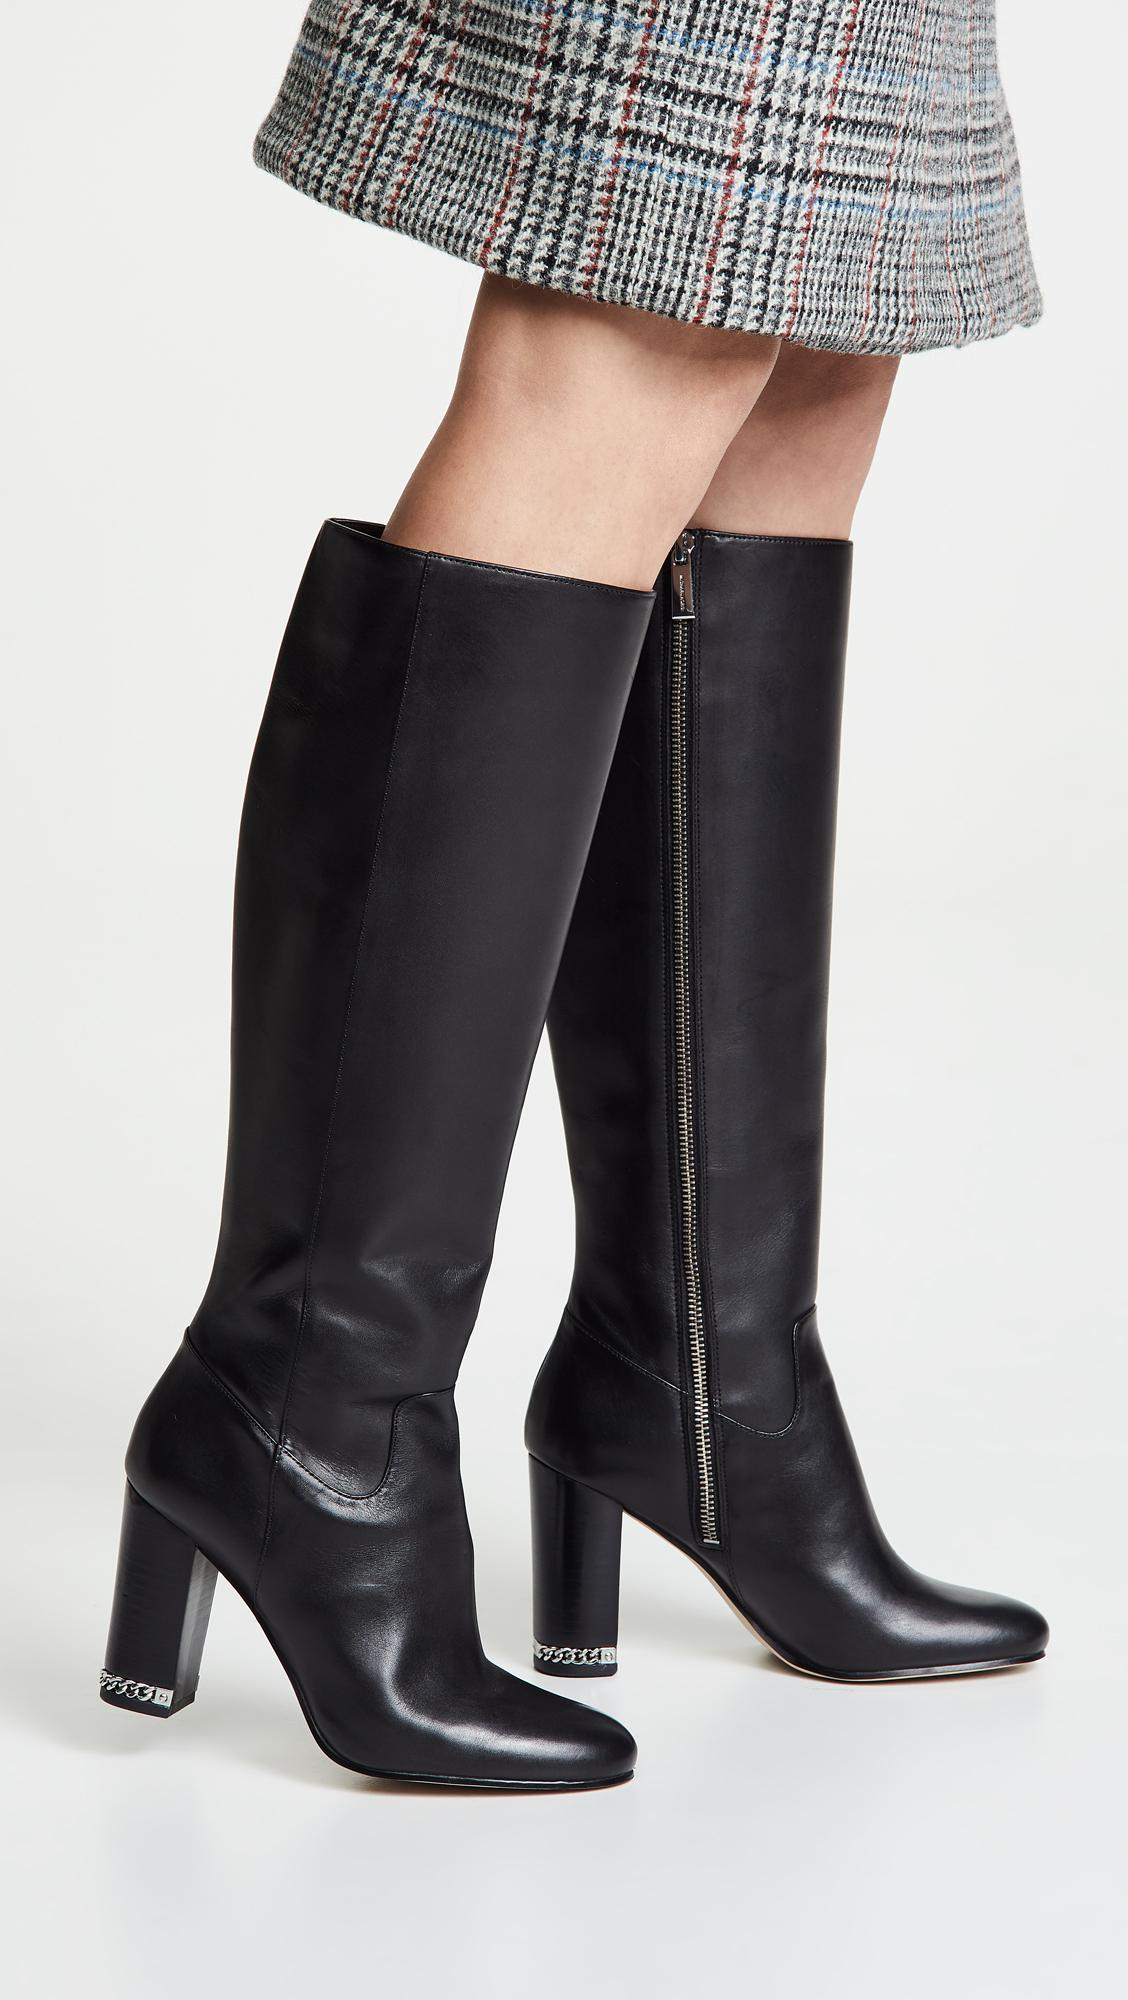 83133afecc55 MICHAEL Michael Kors - Black Walker Tall Boots - Lyst. View fullscreen